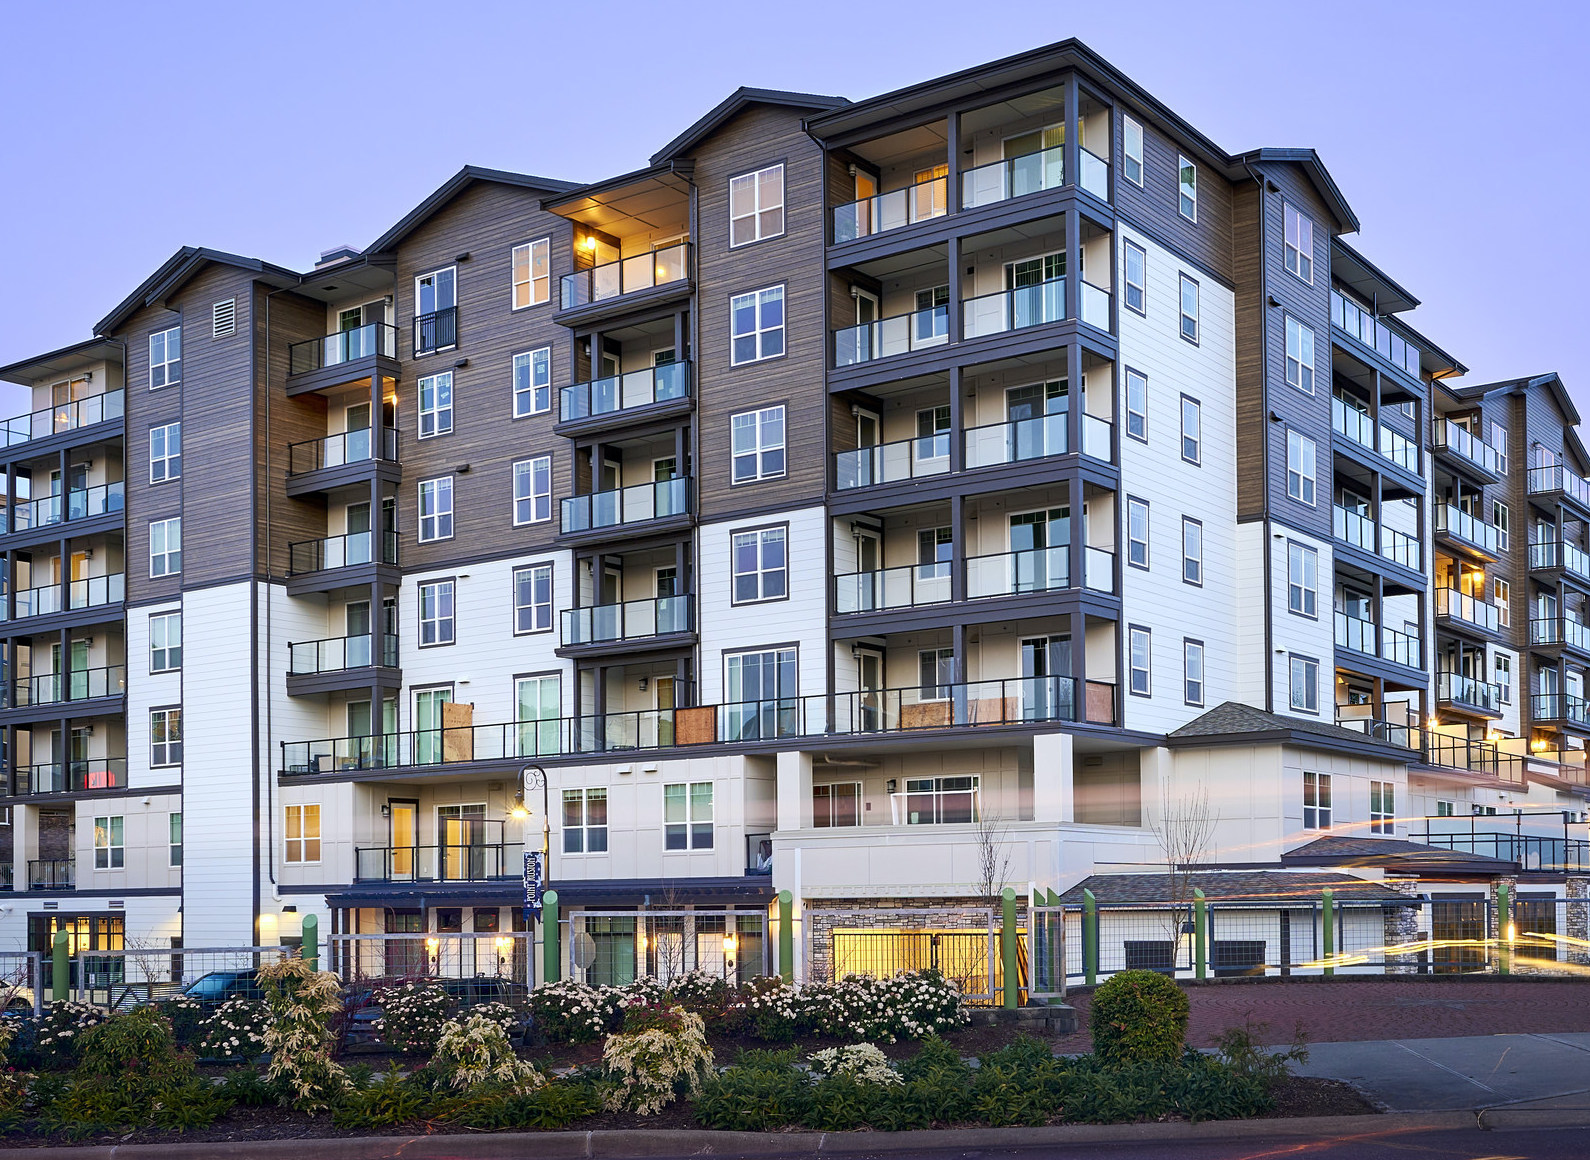 MG Properties Group Expands Pacific Northwest Presence with $85.5 Million Acquisition of Village on Main in Tacoma